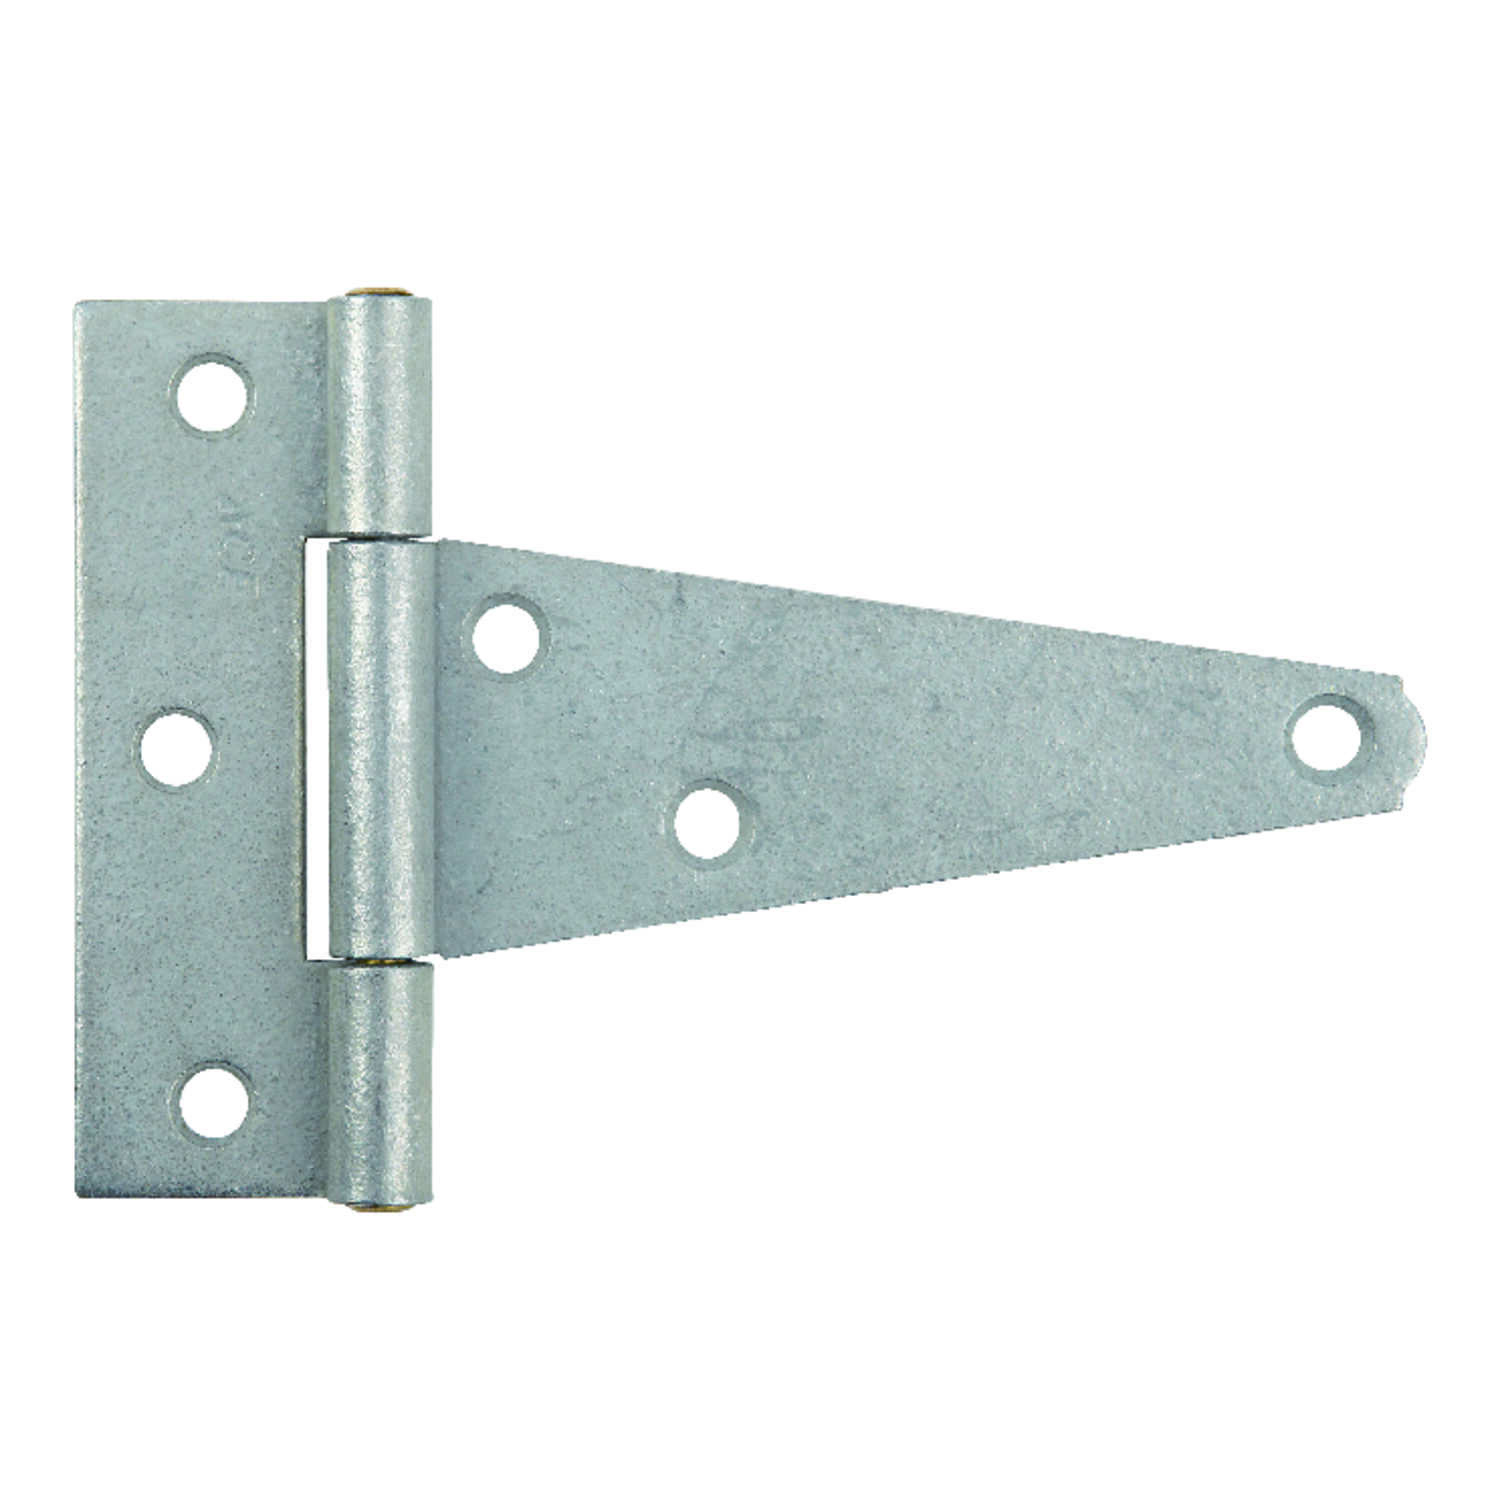 Ace  4 in. L Galvanized  Steel  Heavy Duty T Hinge  1 pk